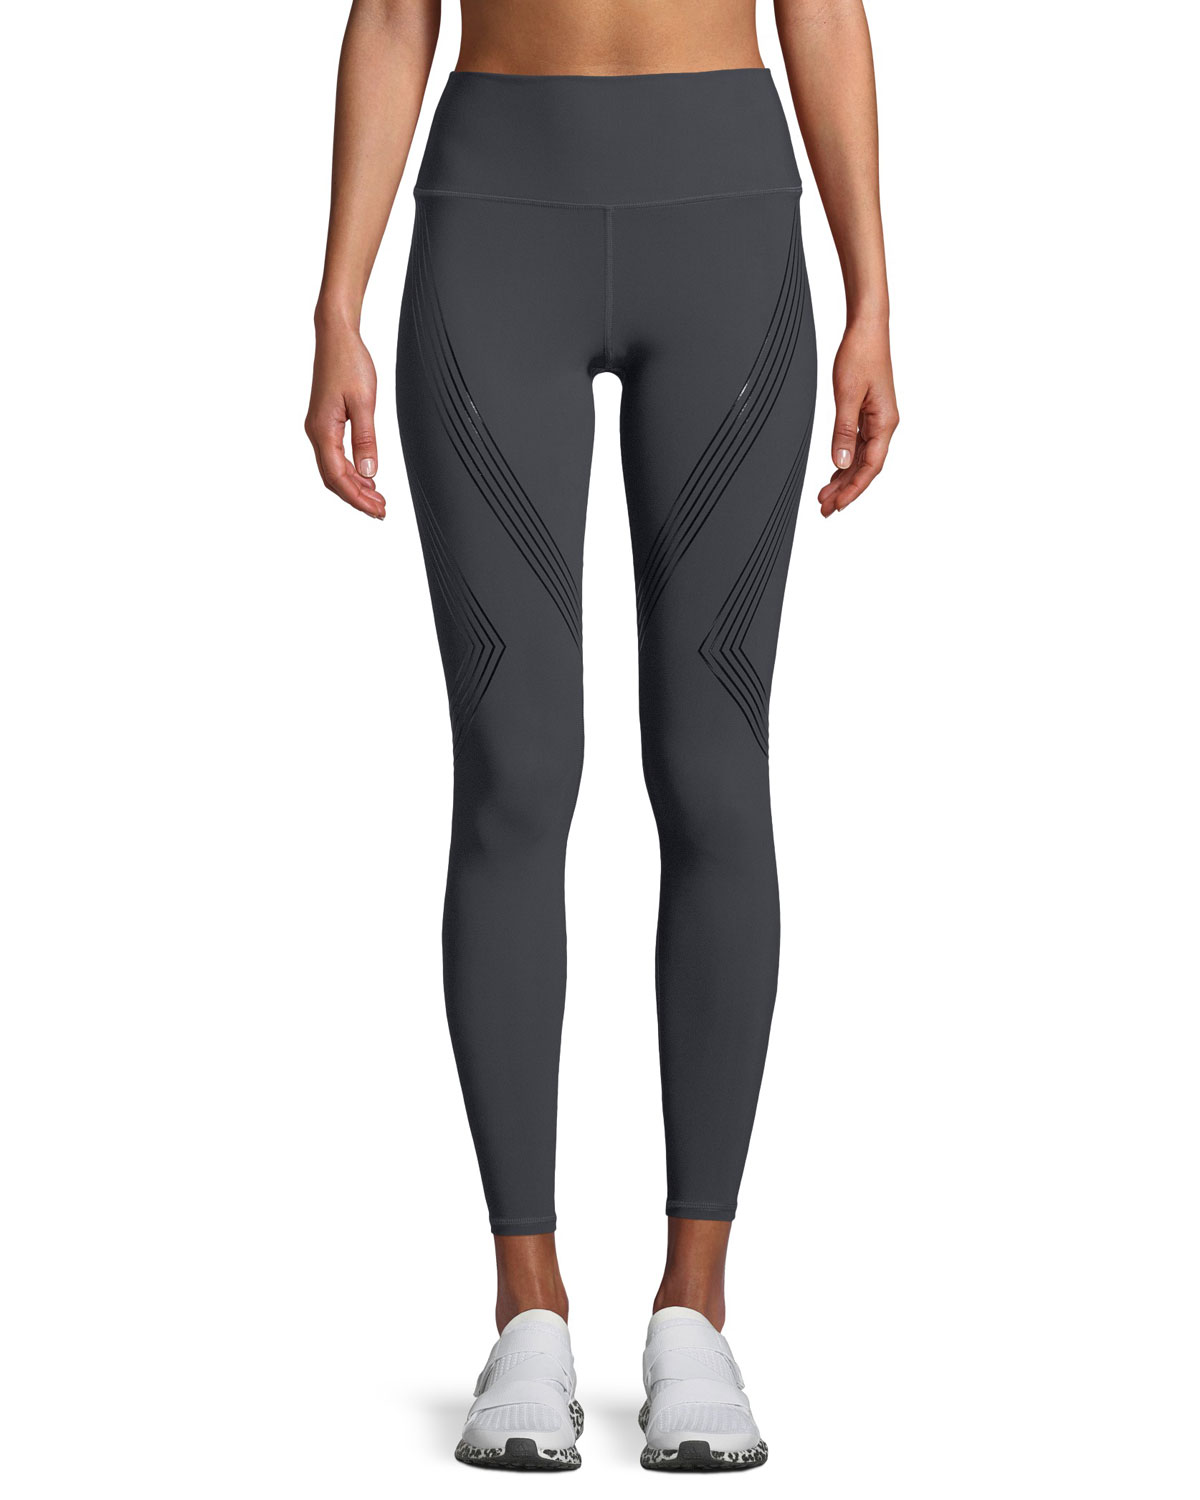 1e269fb165ec Alo Yoga Vapor High-Waist Performance Leggings